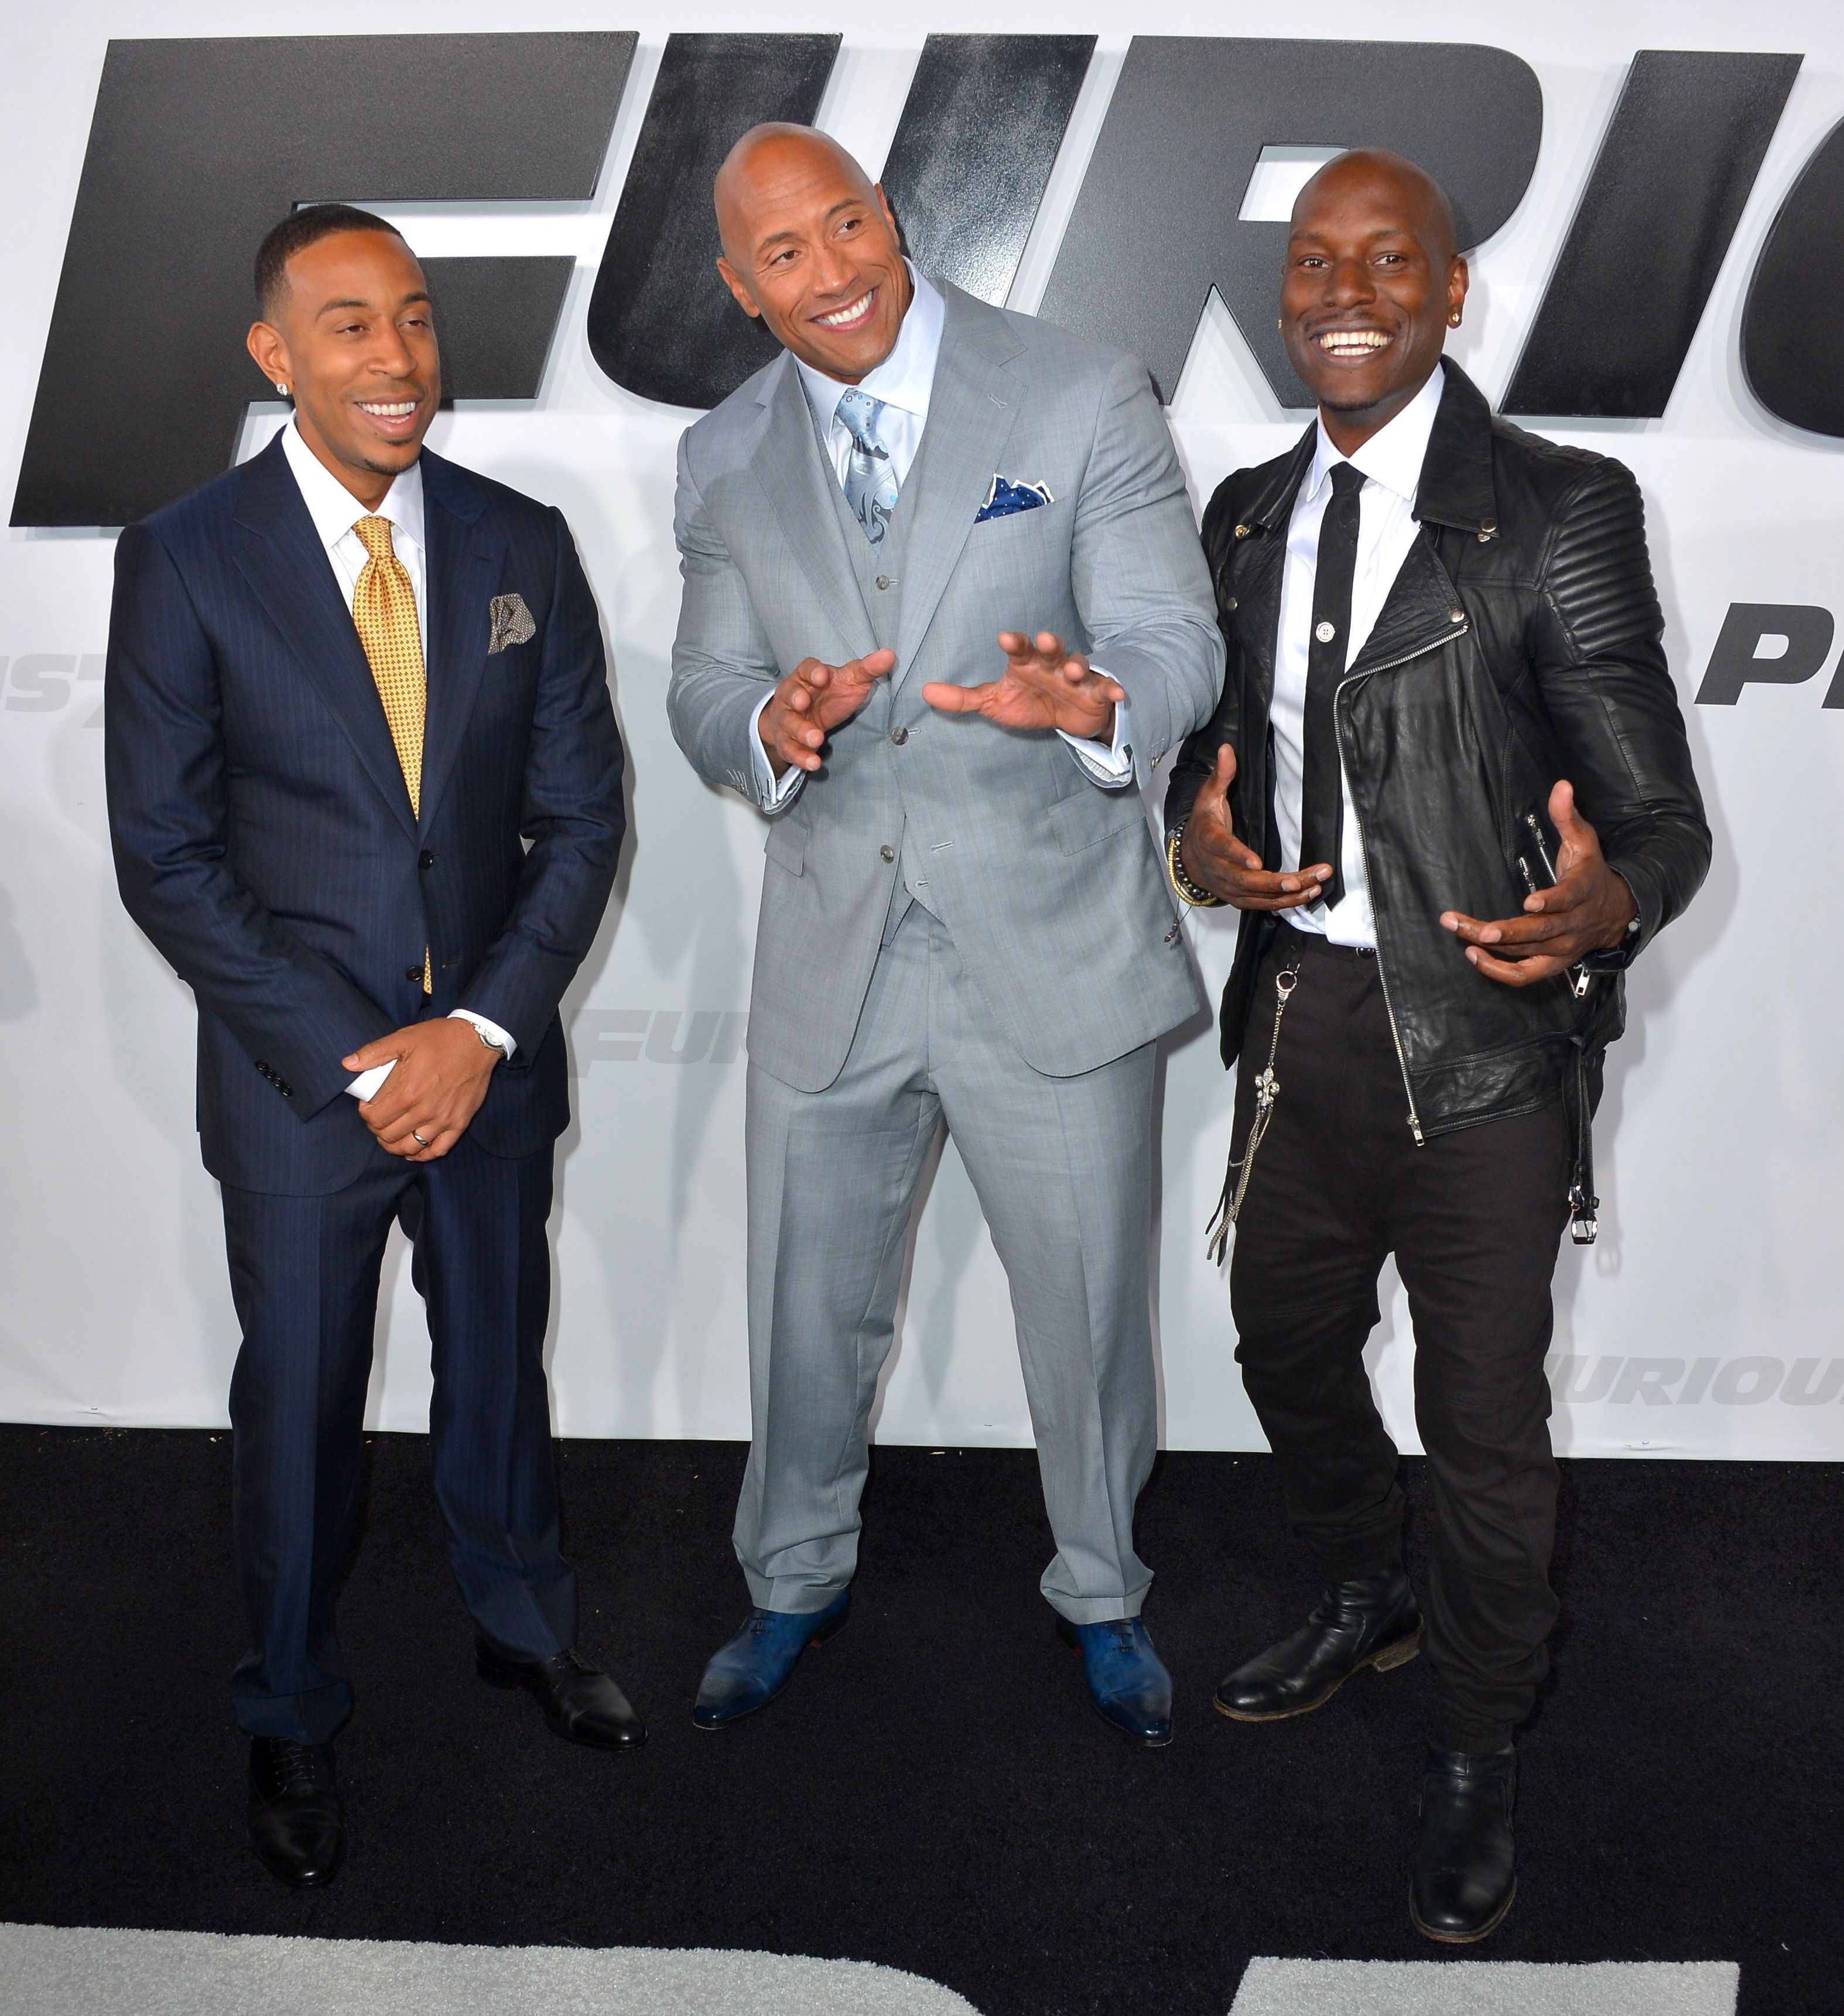 Tyrese Gibson Says He Will Quit 'Fast & Furious' If The Rock Is In 'Fast 9'